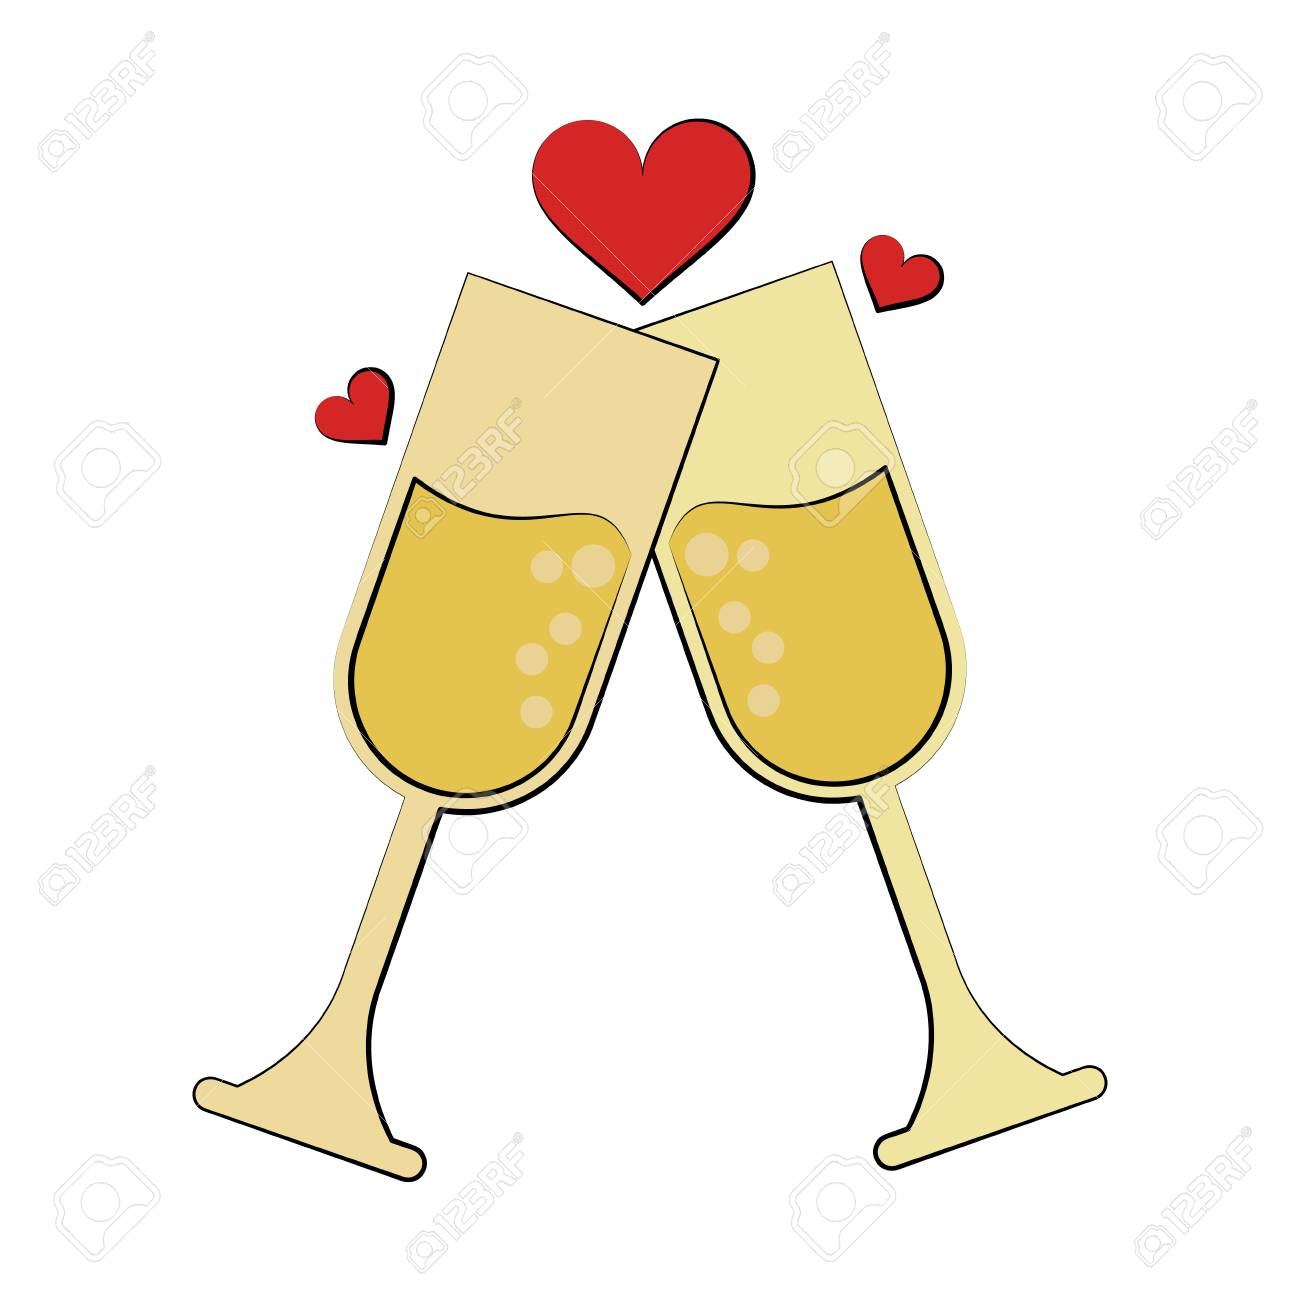 champagne glasses toasting with hearts wedding related icon image...